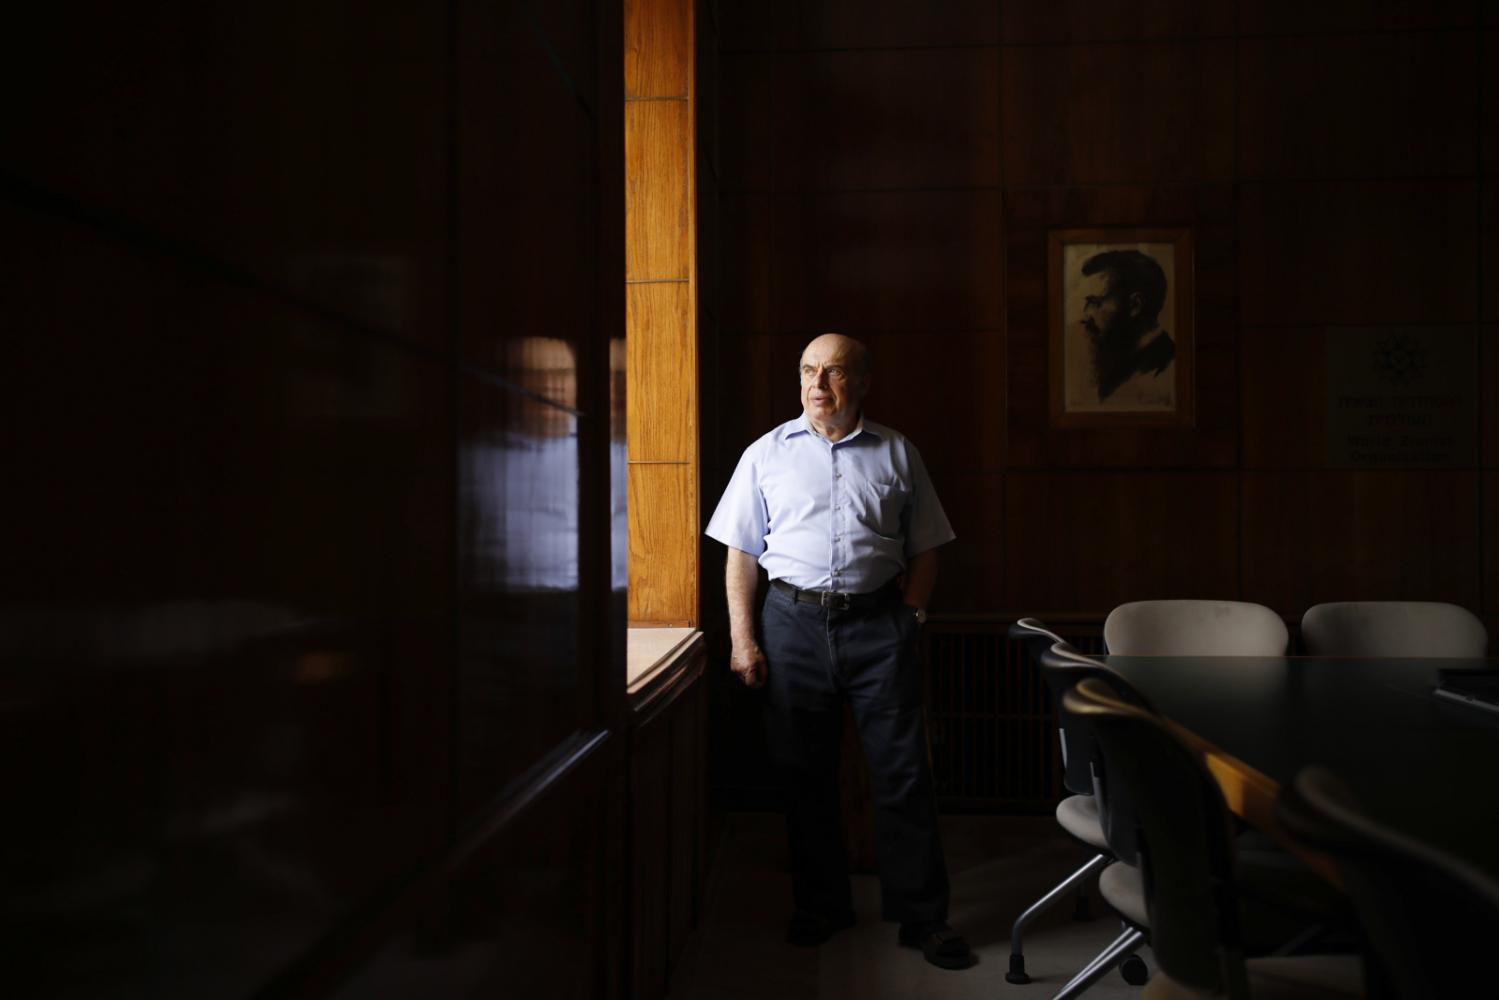 JERUSALEM, ISRAEL - JUNE 17, 2018: Portrait of Natan Sharansky, Israeli cabinet minister, human rights activist and head of the Jewish Agency. Sharansky is stepping down from his position in order to retire. CREDIT: Corinna Kern for The New York Times